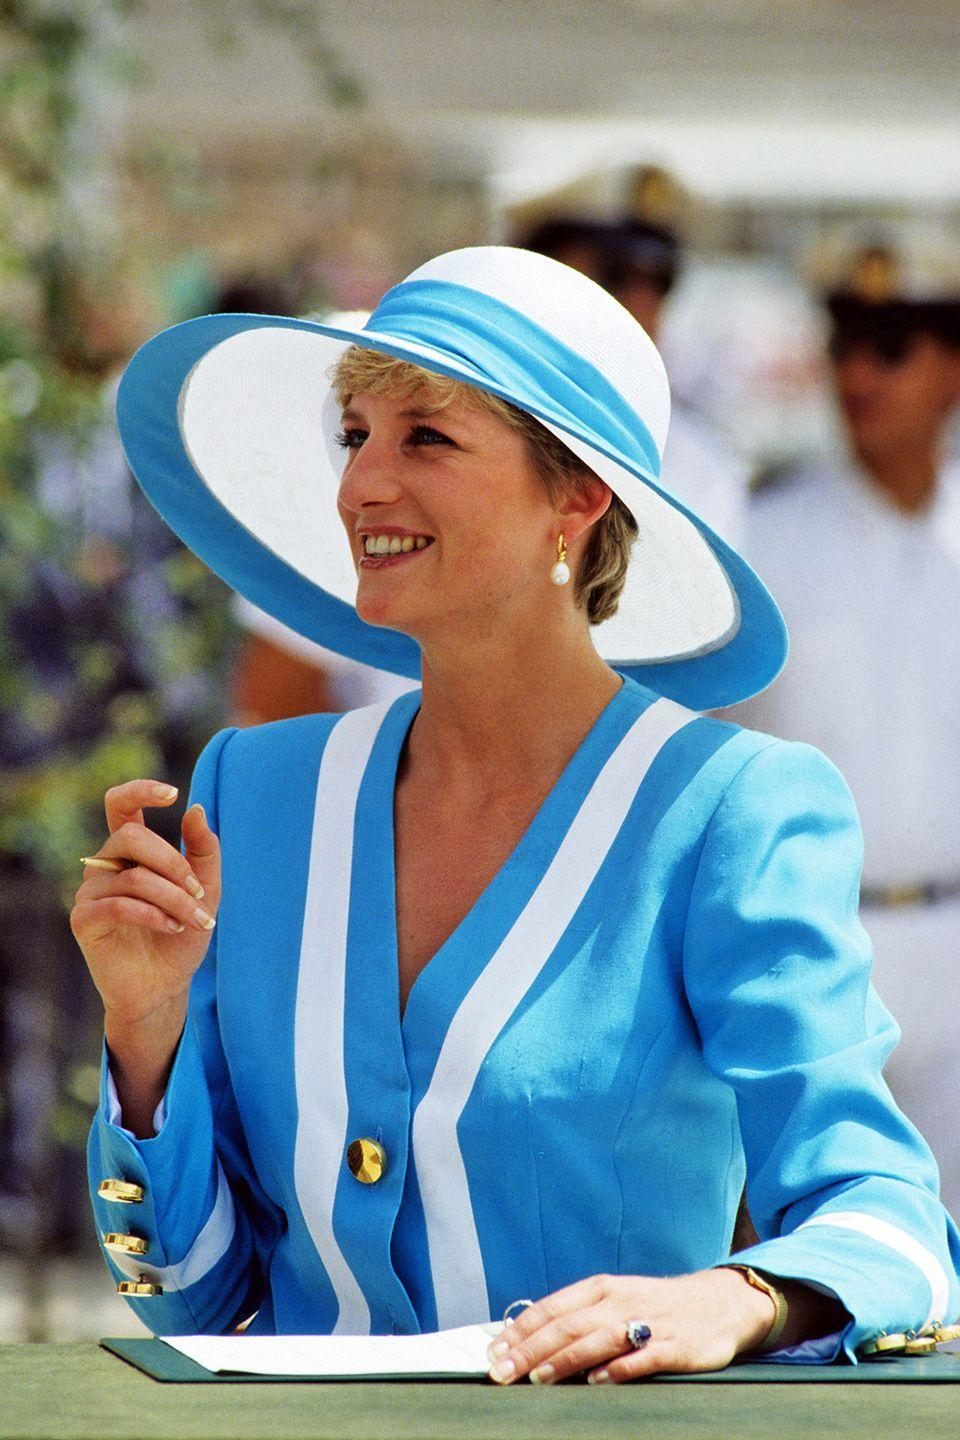 <p>Wearing a turquoise-accented sun hat while on a visit to Egypt. </p>